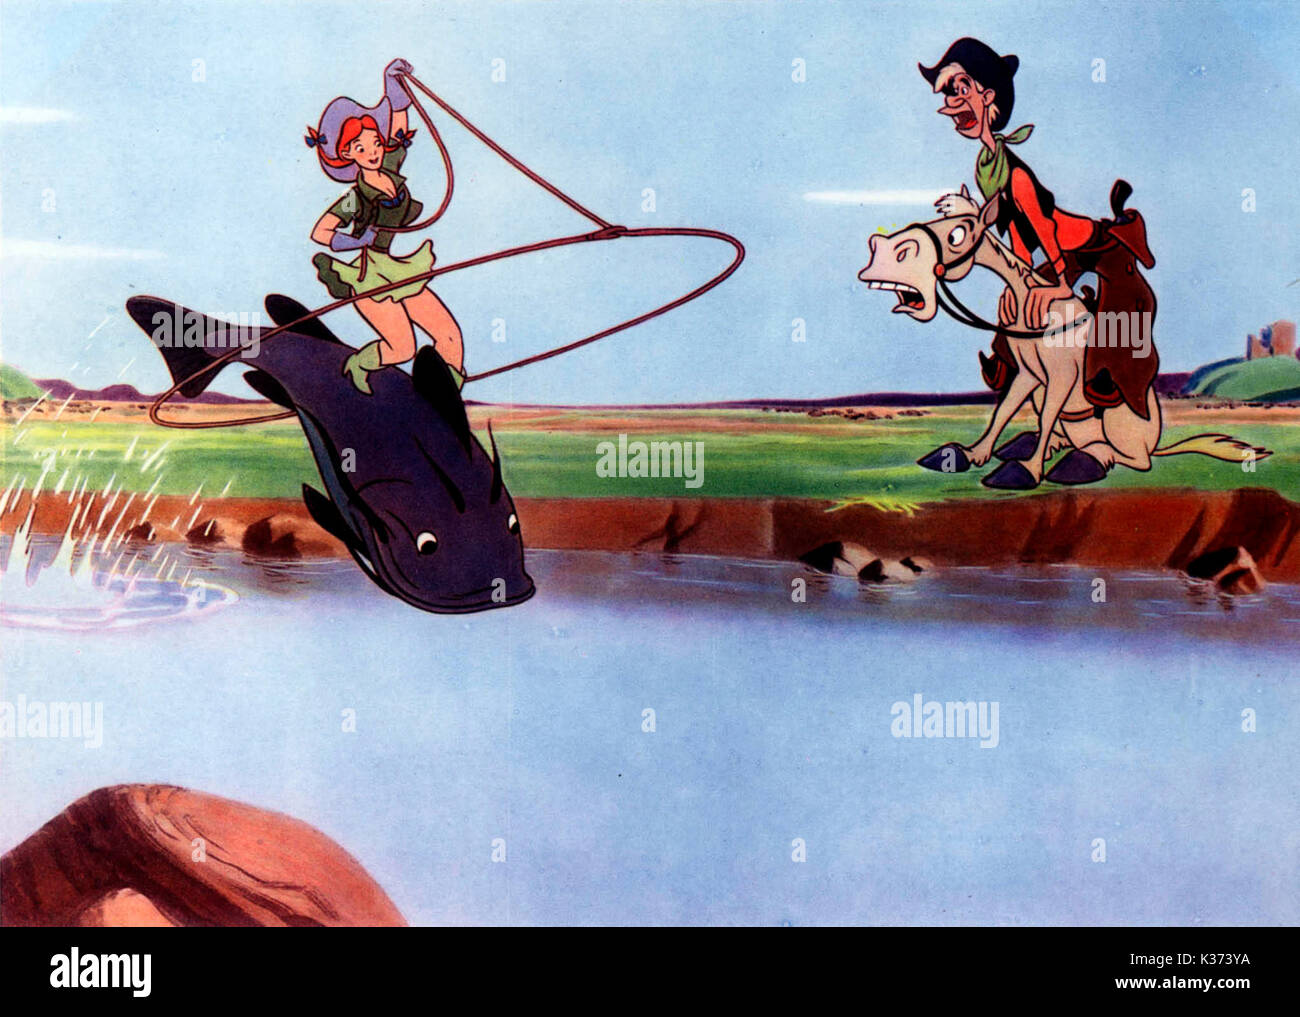 Melody Time Date 1948 Stock Photo Alamy